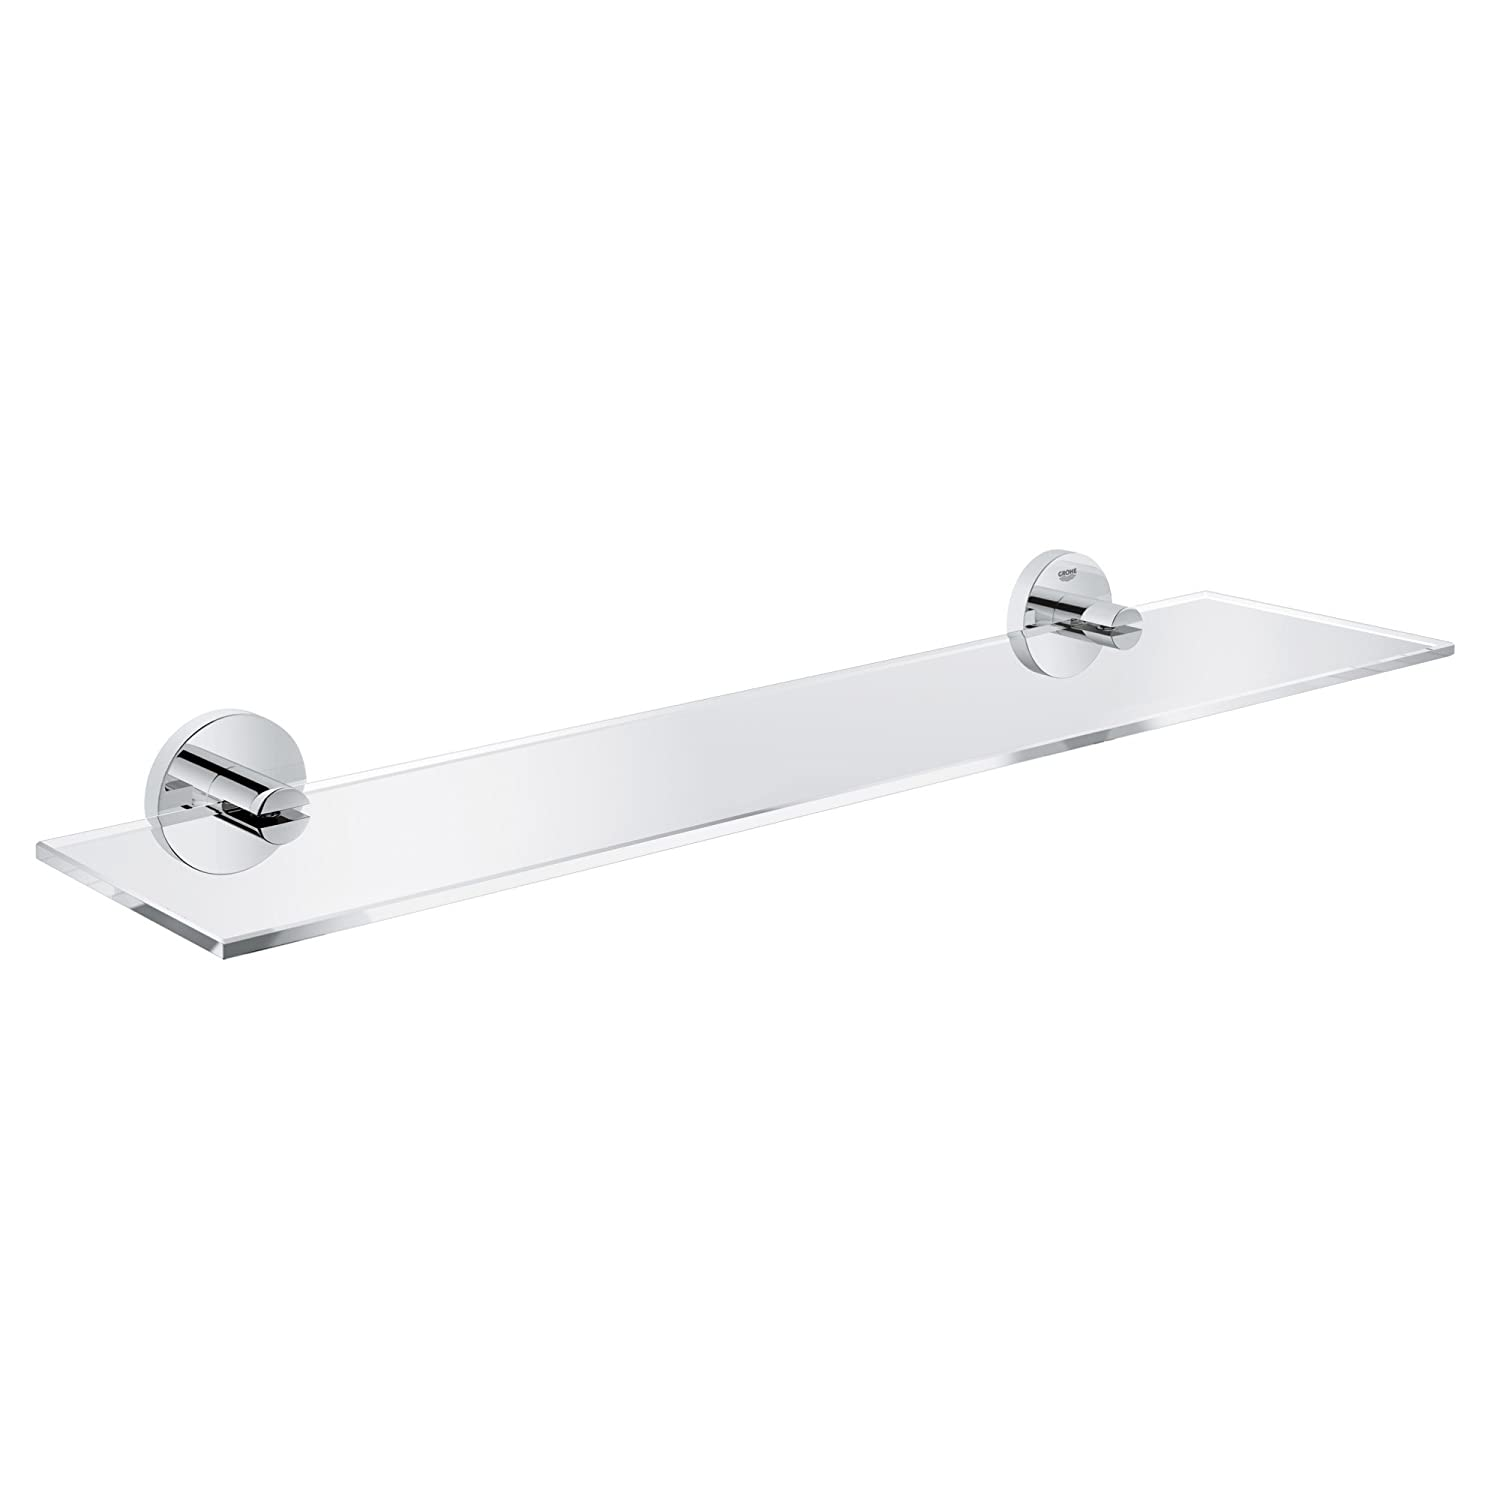 GROHE 40799001 Essentials Shelf 380mm, Starlight Chrome